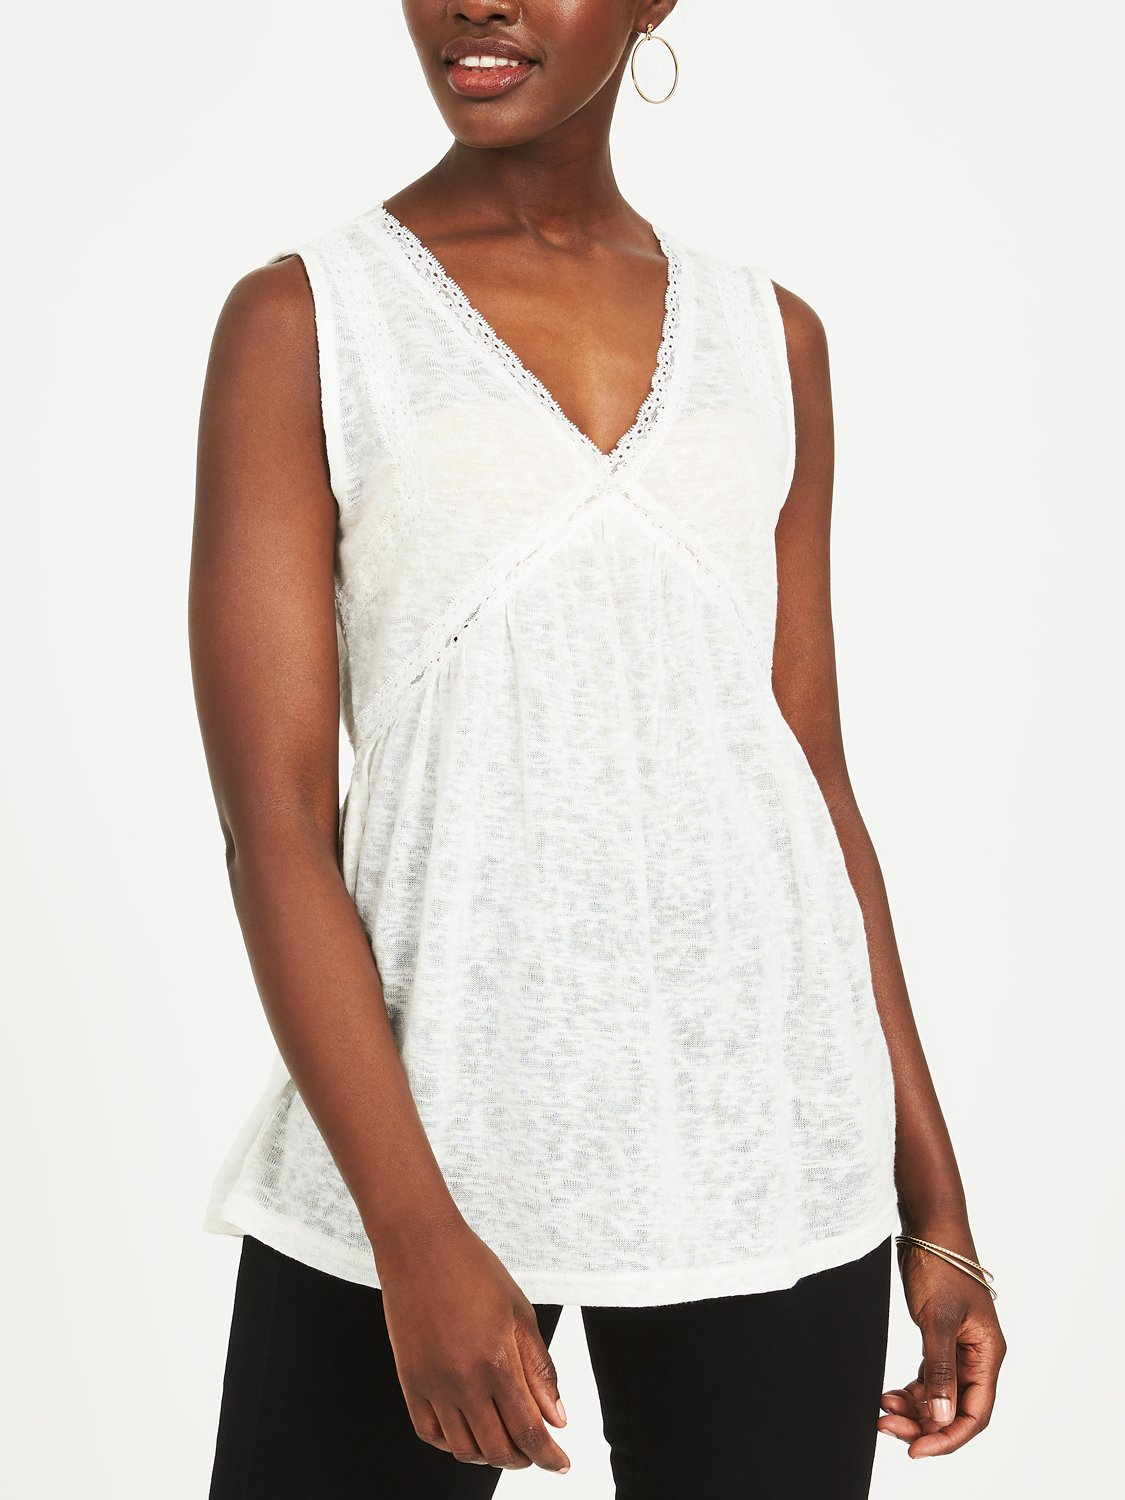 Copy of Empire Waist Lace Tank Top